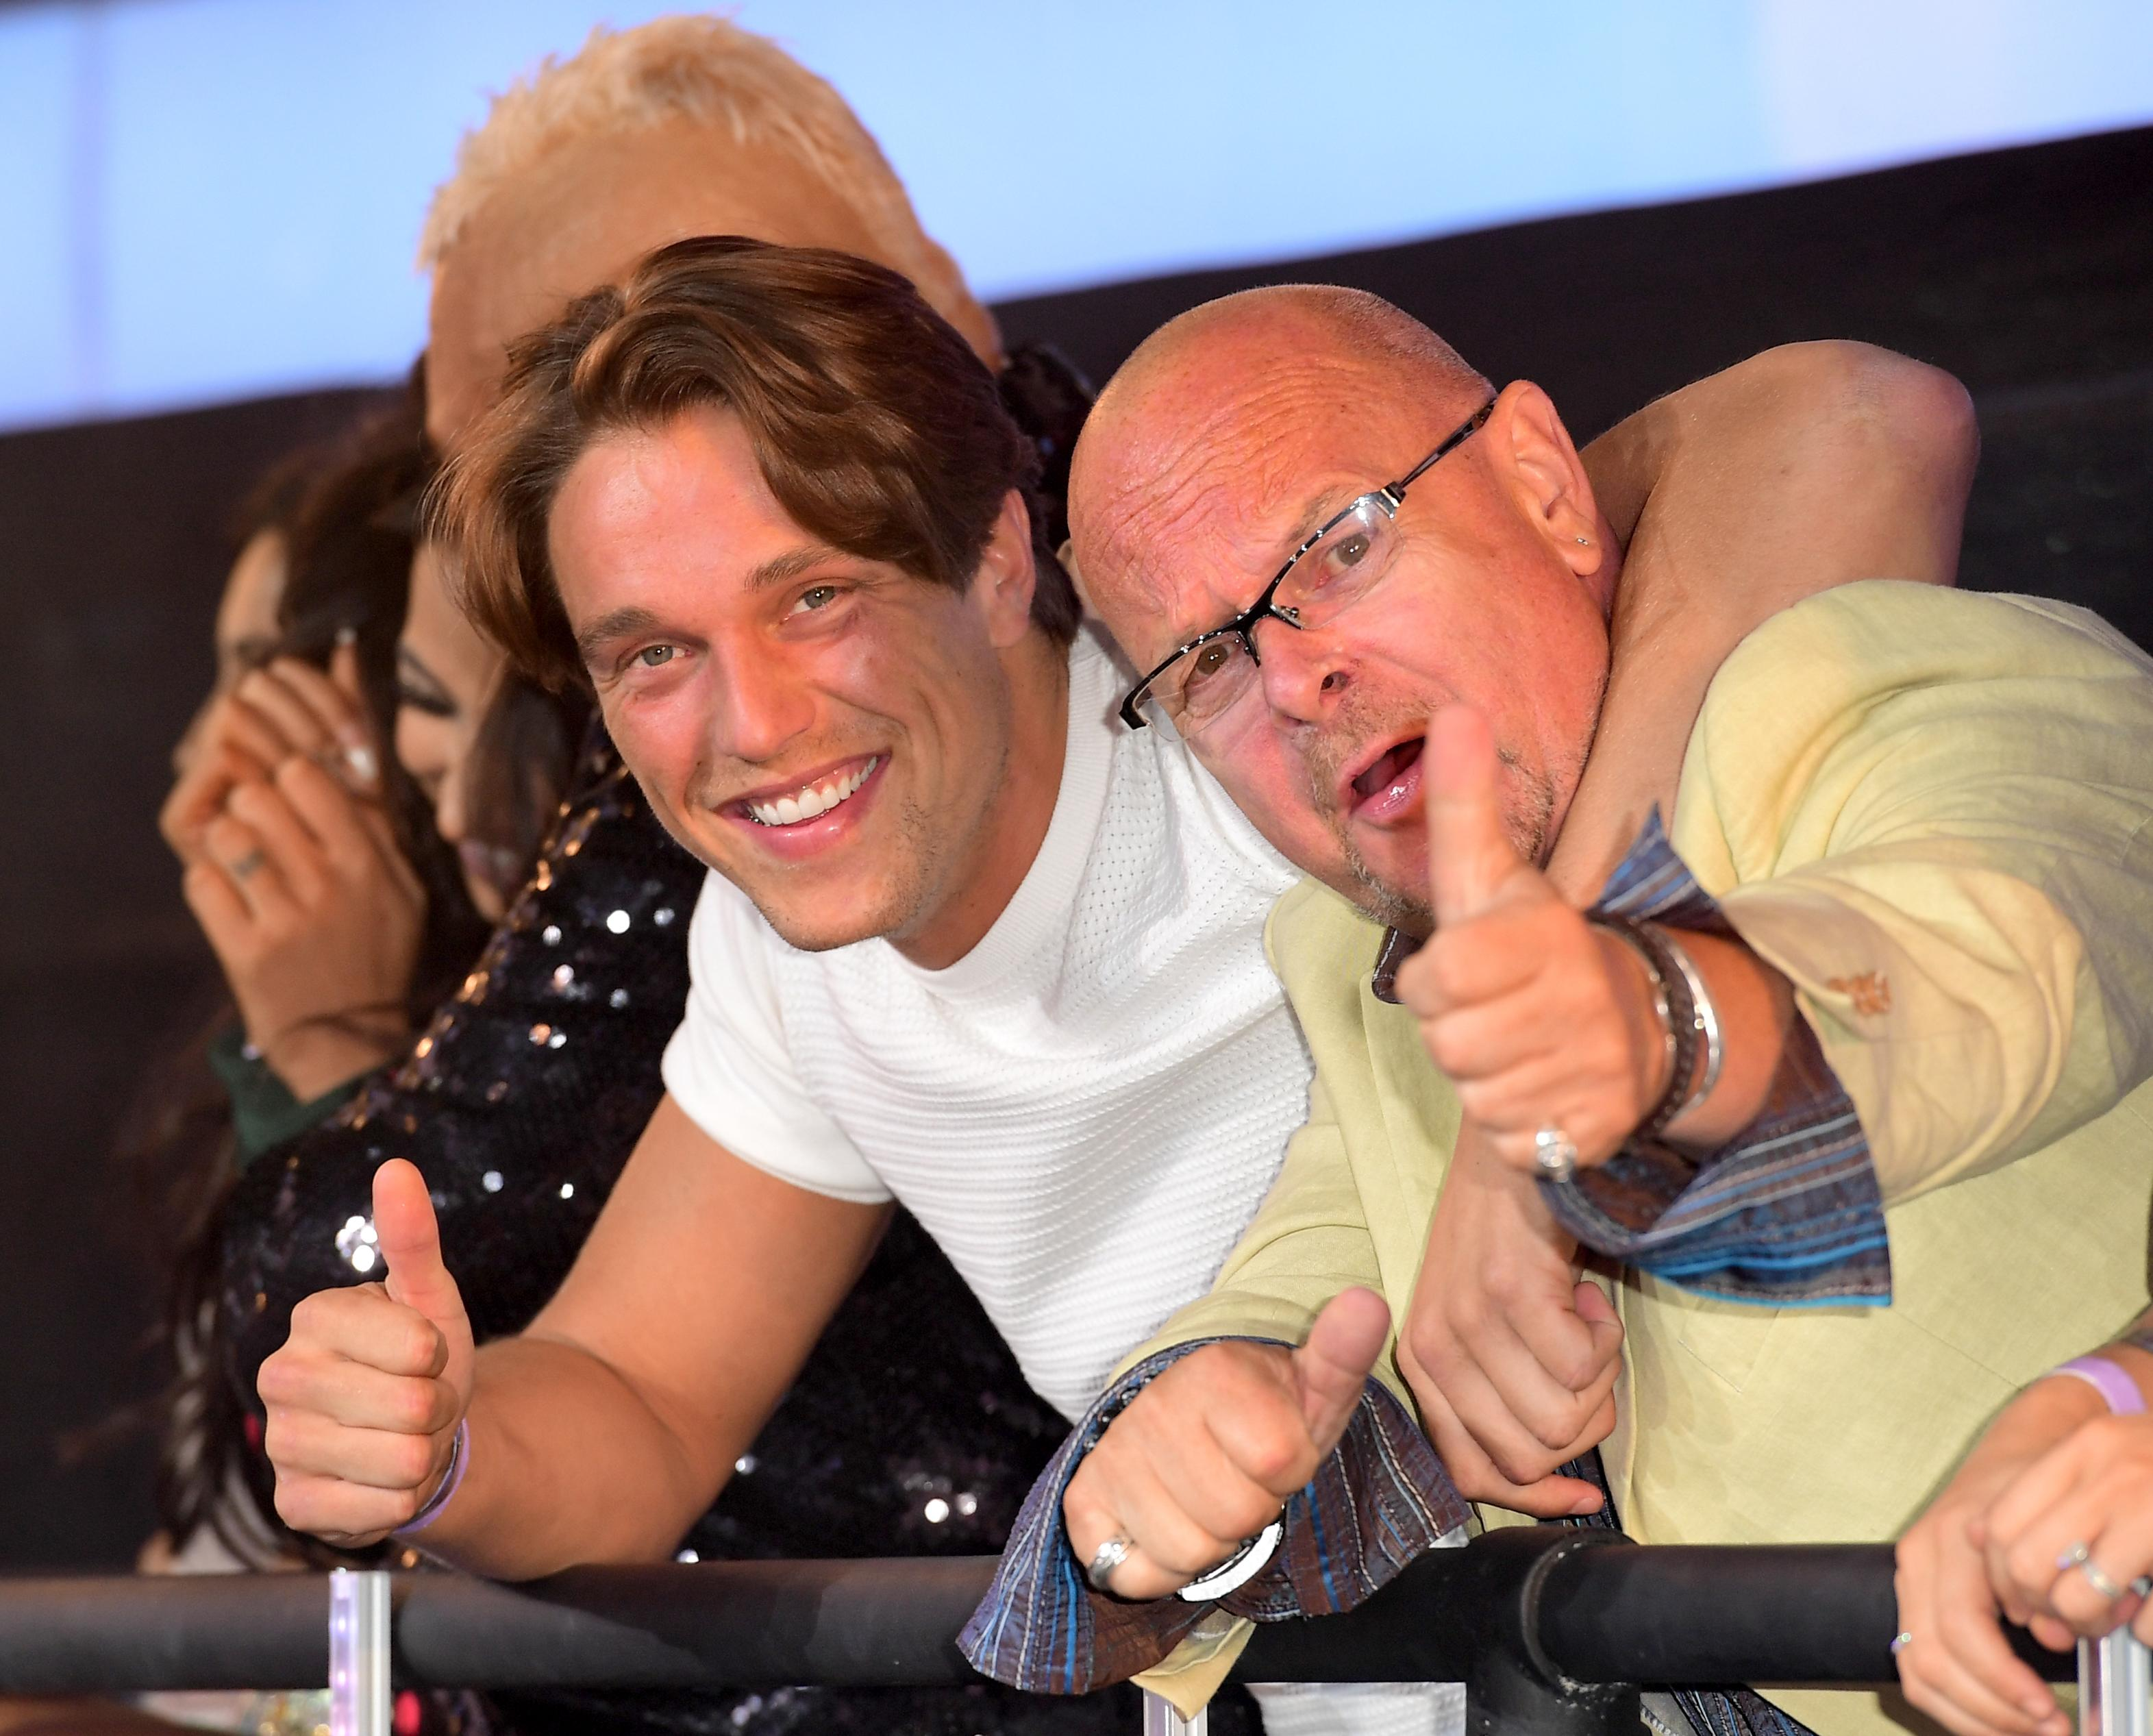 Lewis Bloor and James Whale during the live final of Celebrity Big Brother, at Elstree Studios, London.